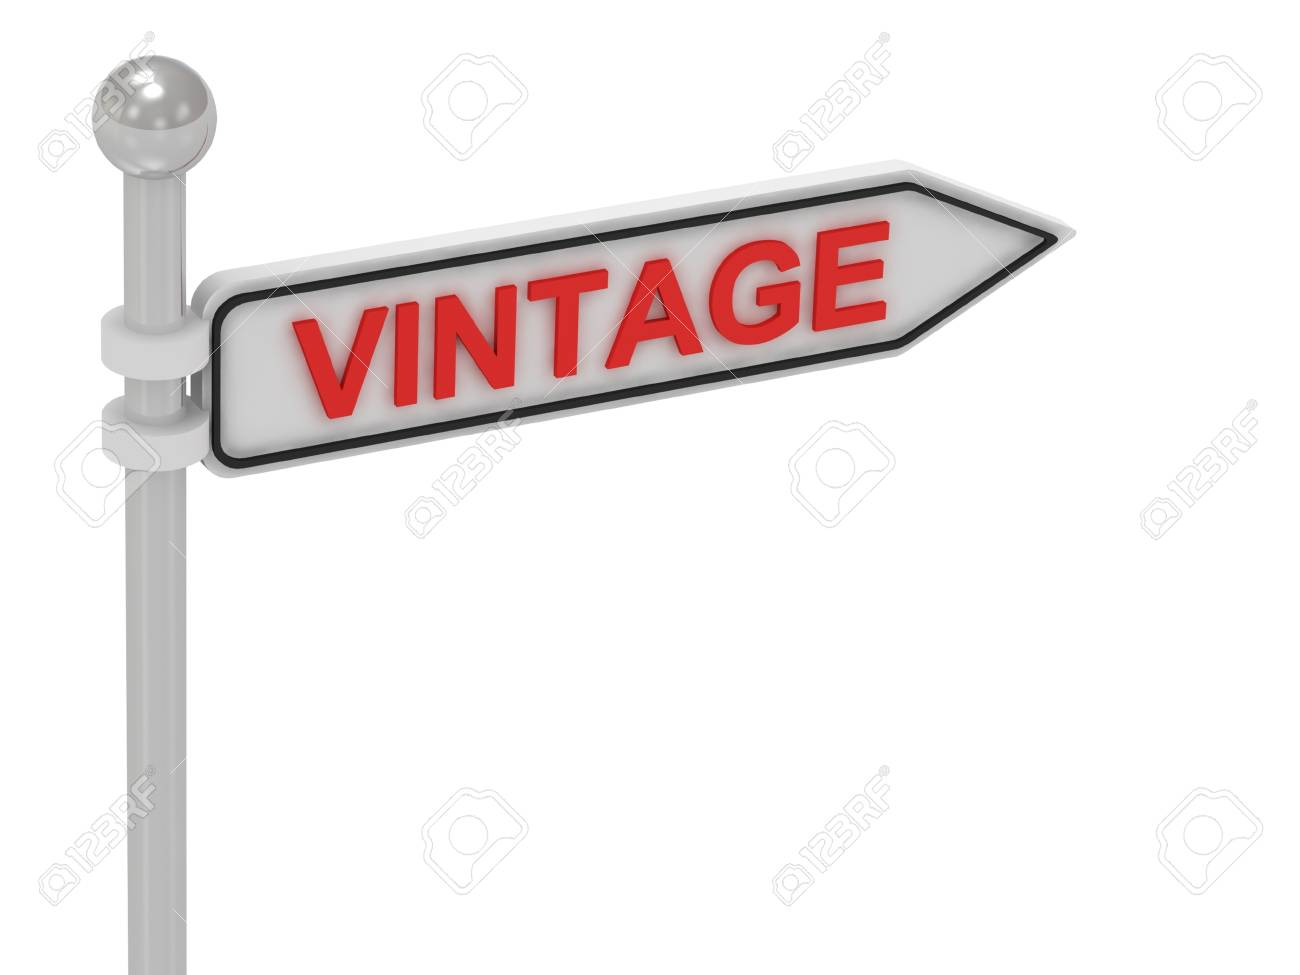 vintage arrow sign with letters on isolated white background stock